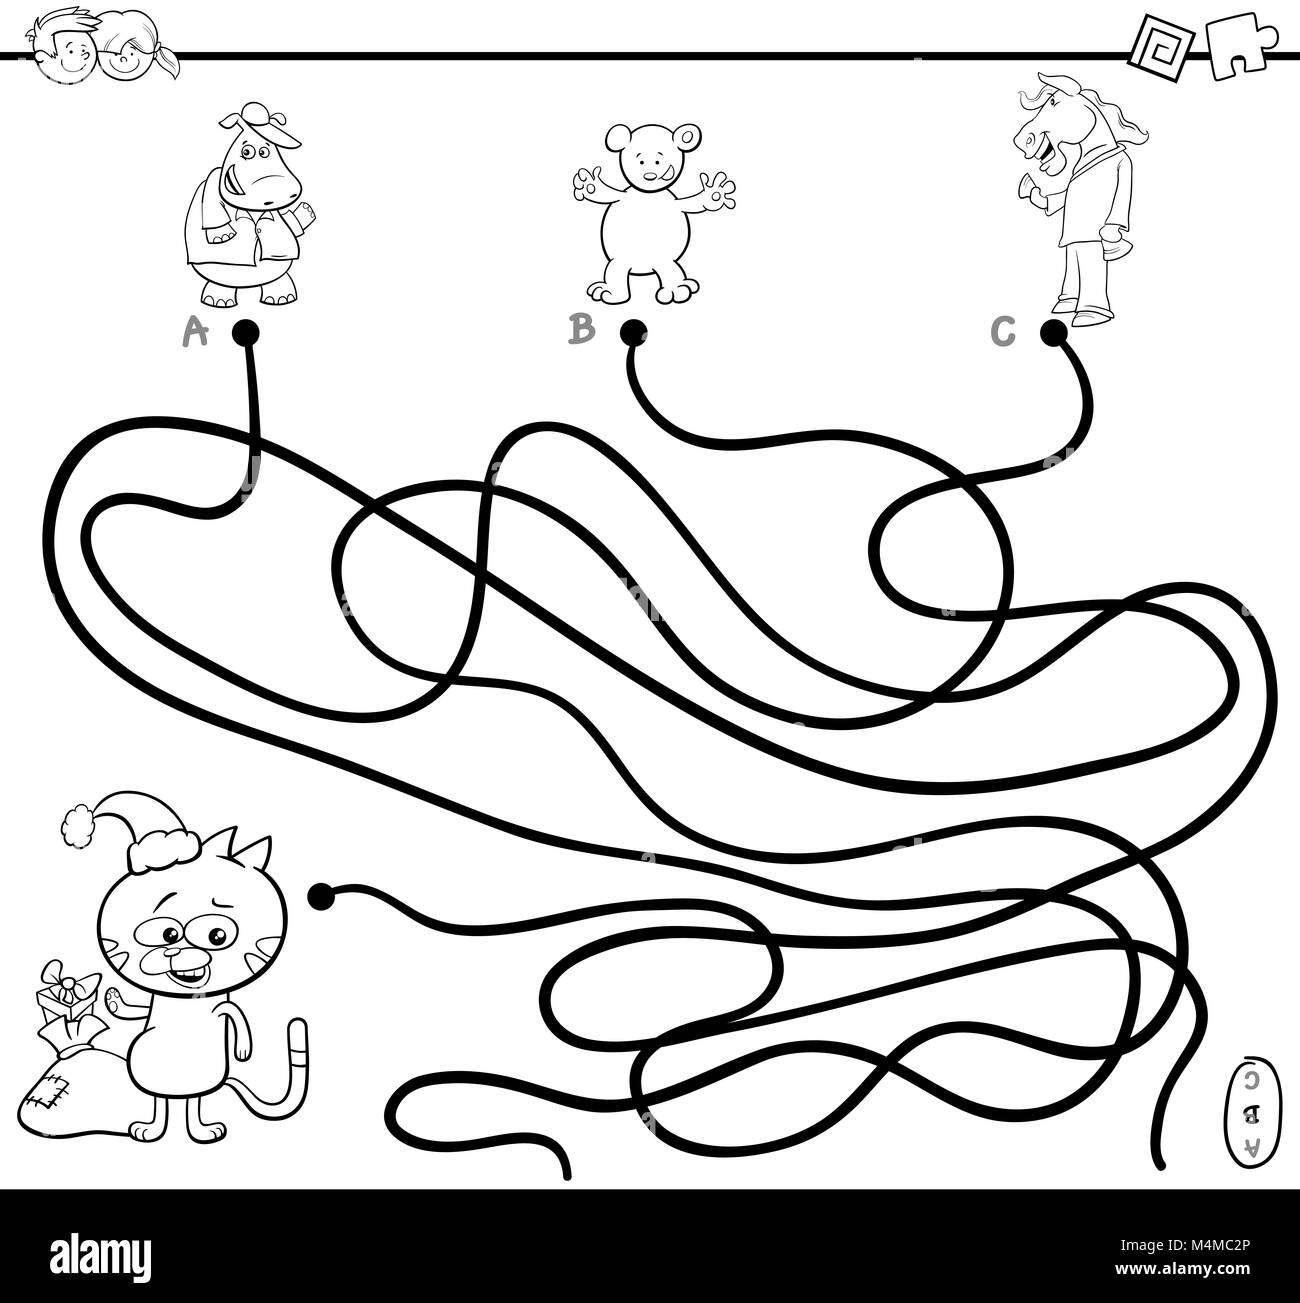 path maze game coloring page Stock Photo: 175010830 - Alamy